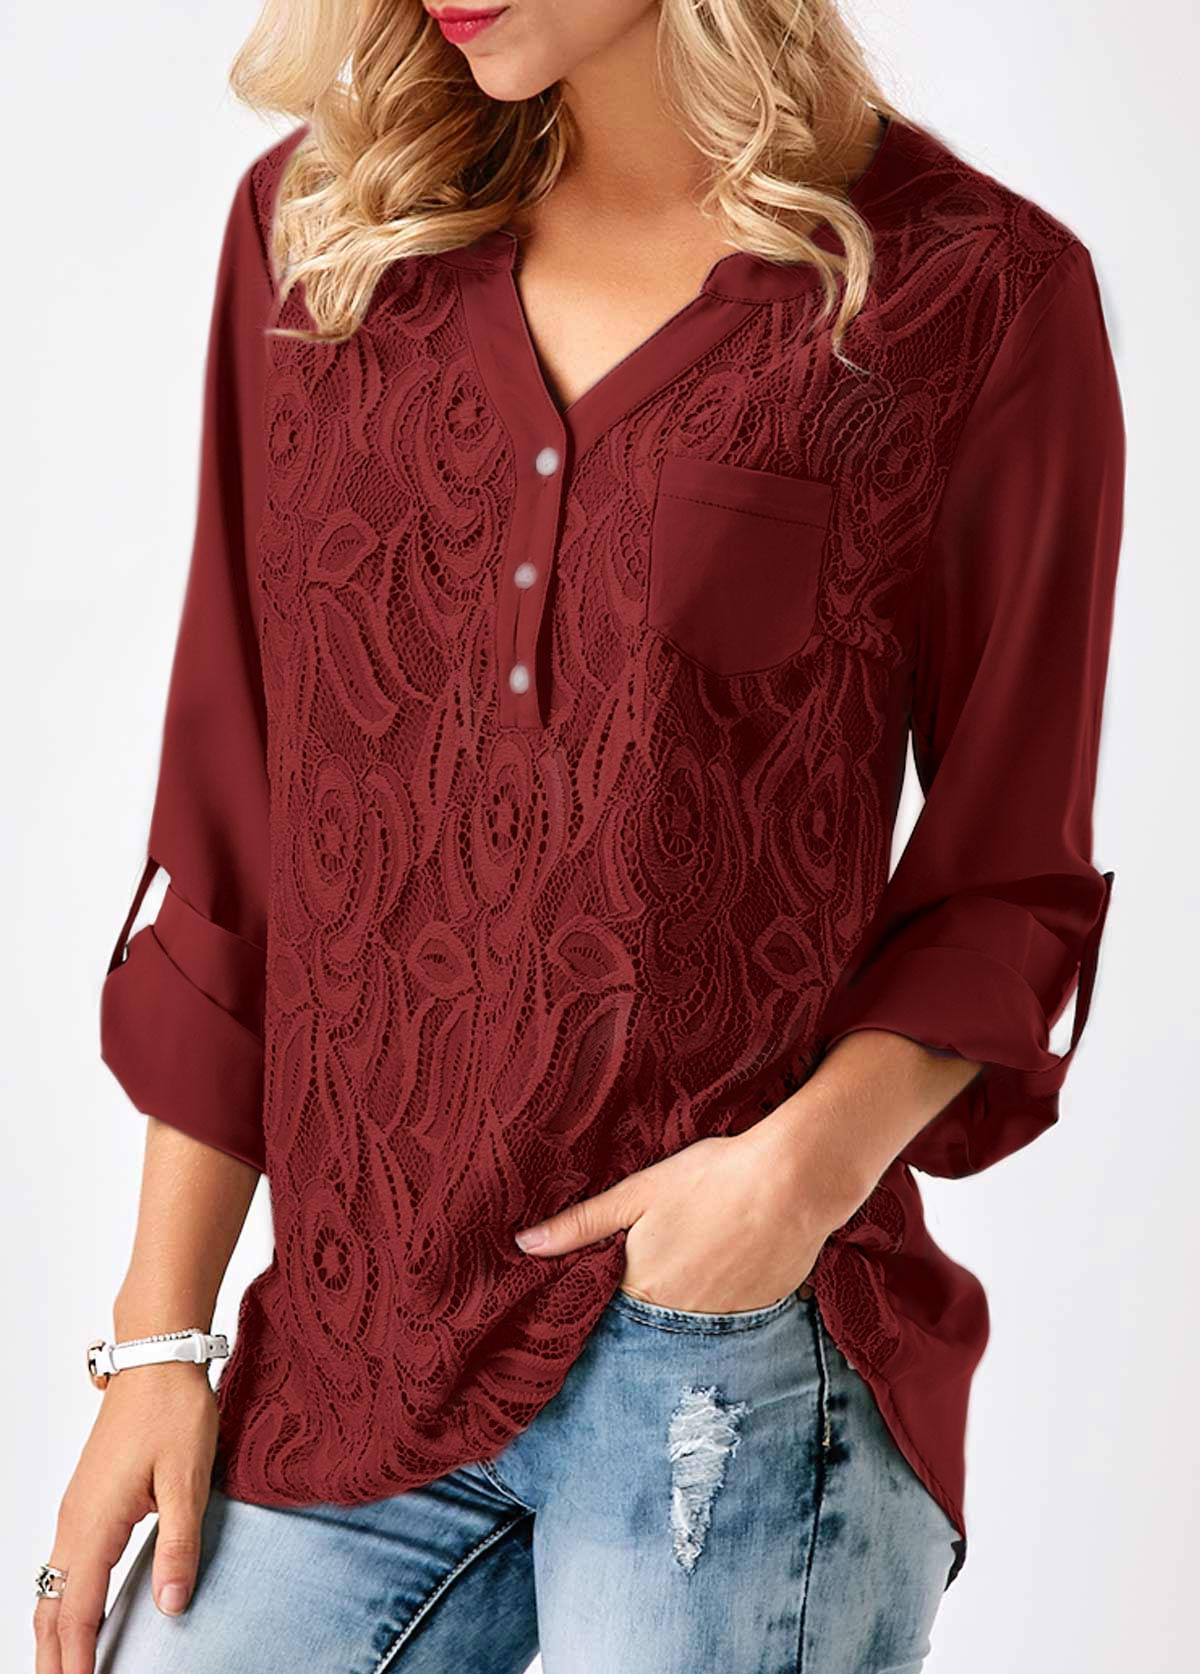 7f4c437ef0be5 Roll Tab Sleeve Lace Panel Wine Red Blouse